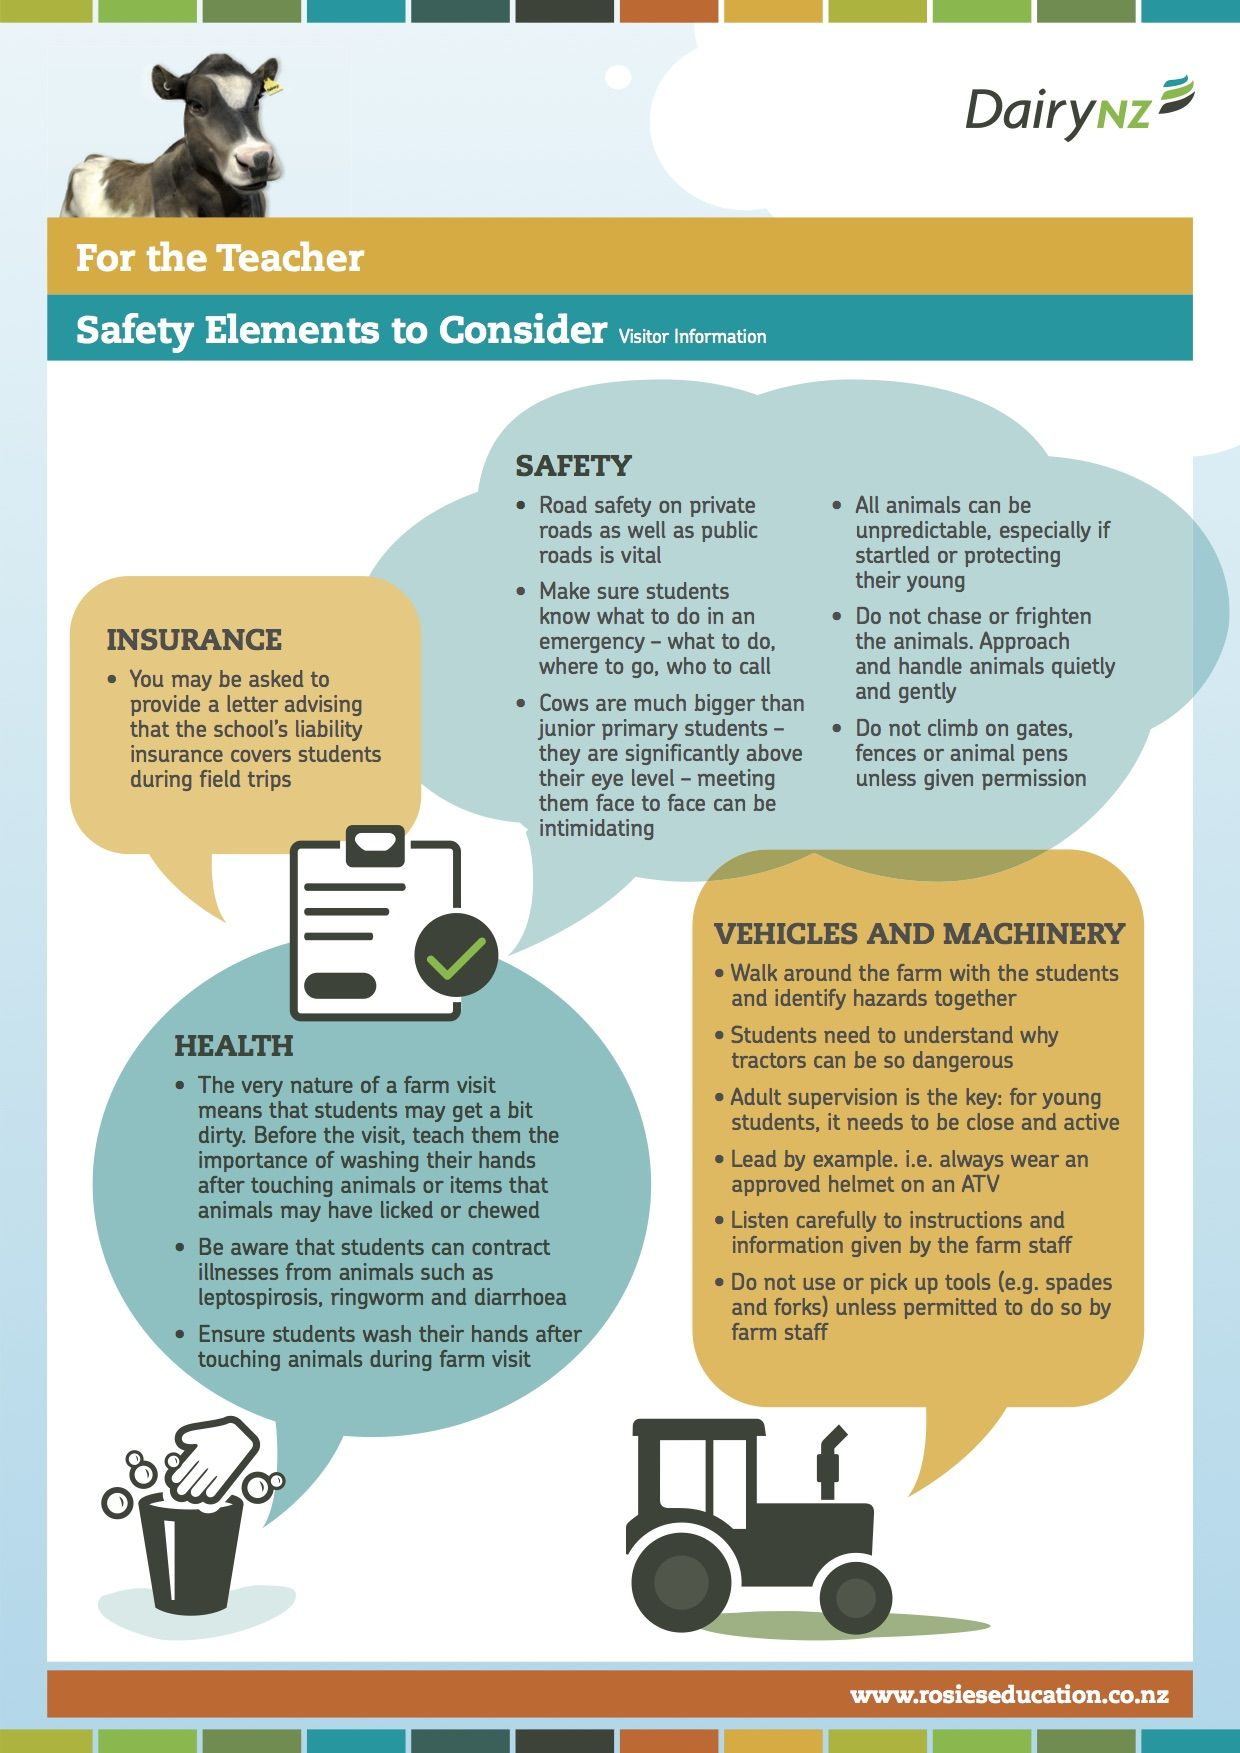 For The Teacher Safety Elements To Consider